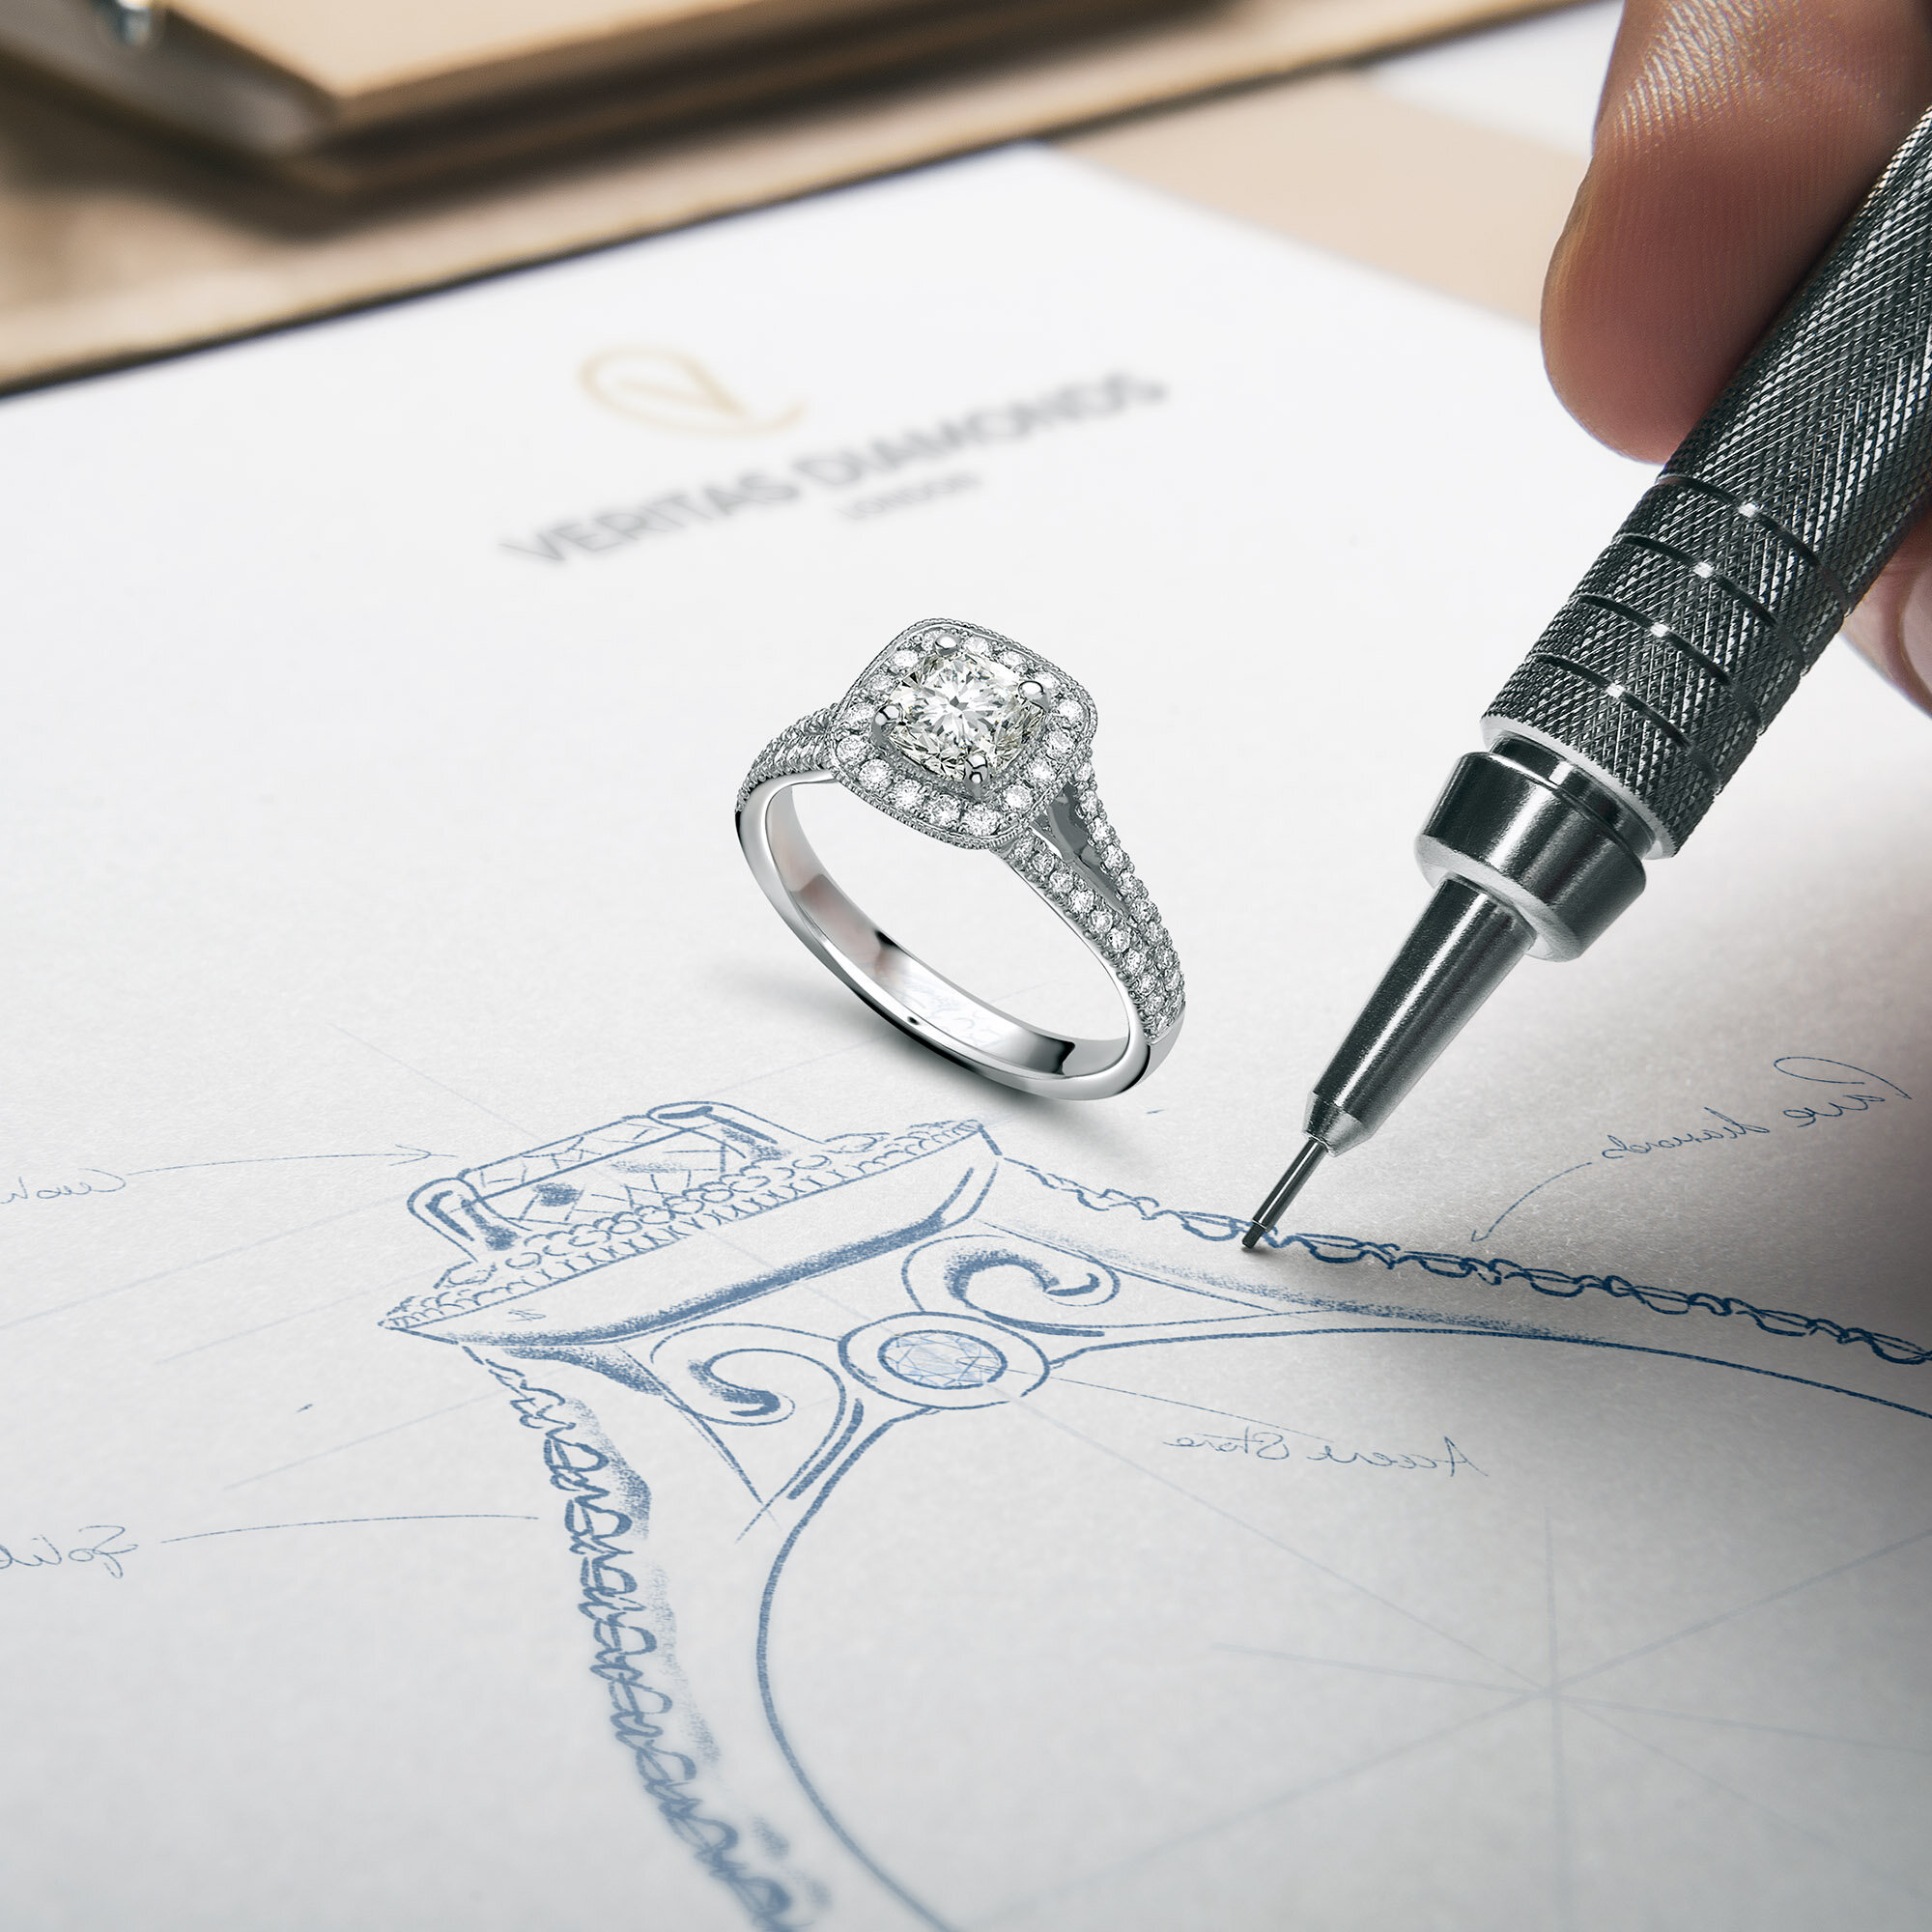 Jewellery Sketching Drawing And Design Service Lionsorbet Website Design Product Marketing